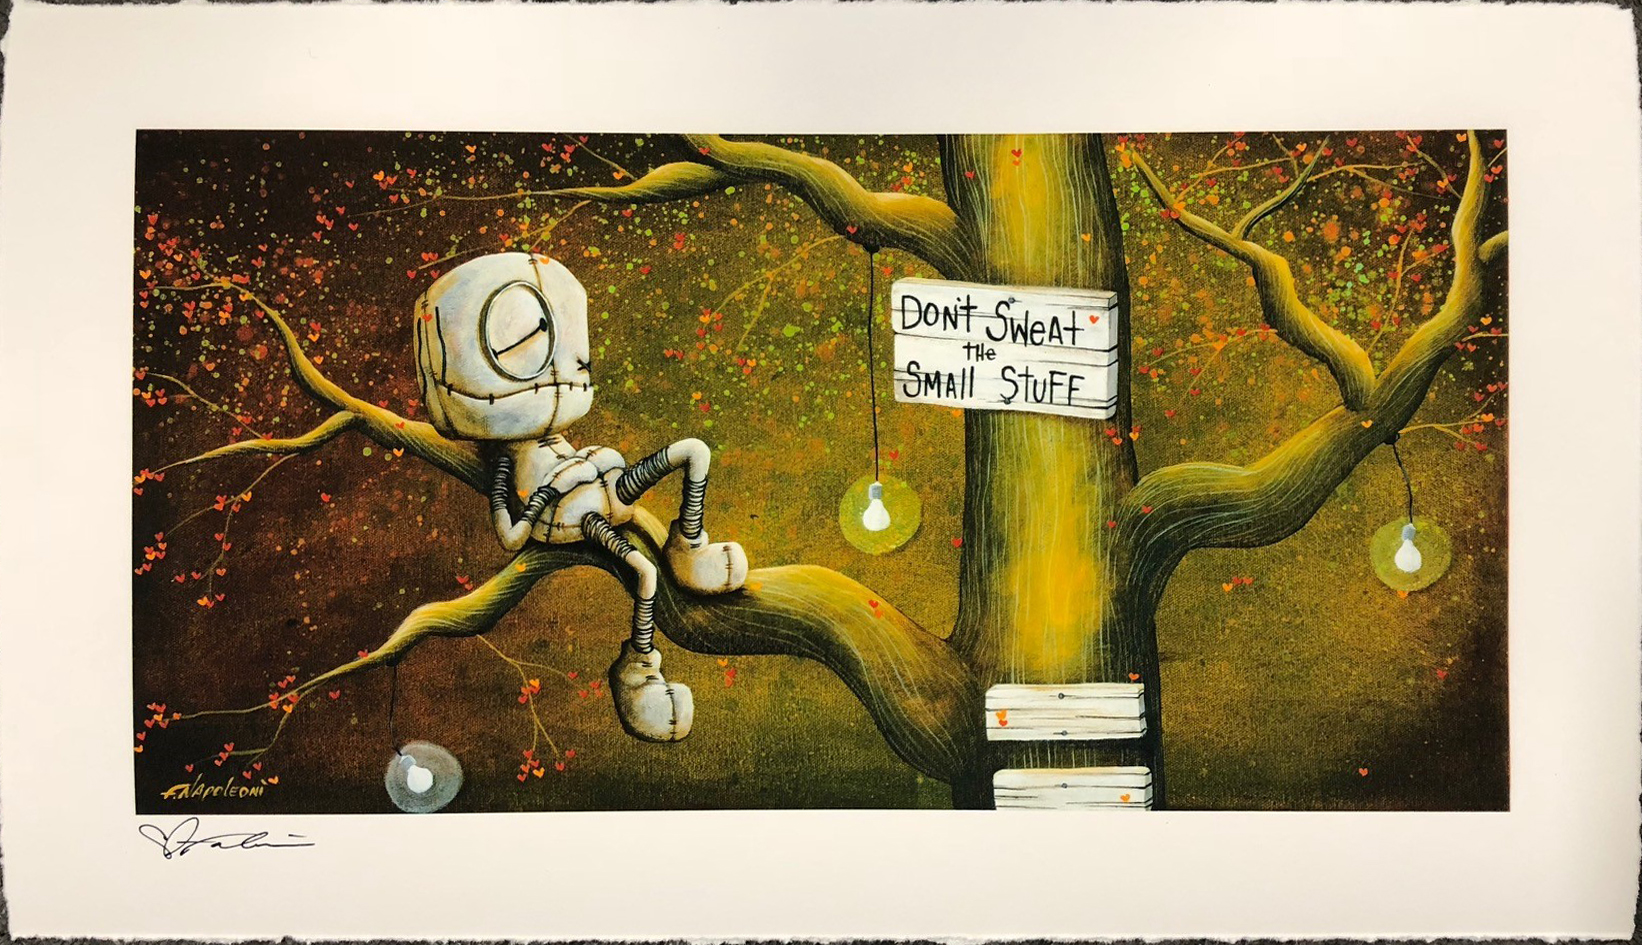 Fabio Napoleoni Don't Sweat the Small Stuff (OE) Mini Print